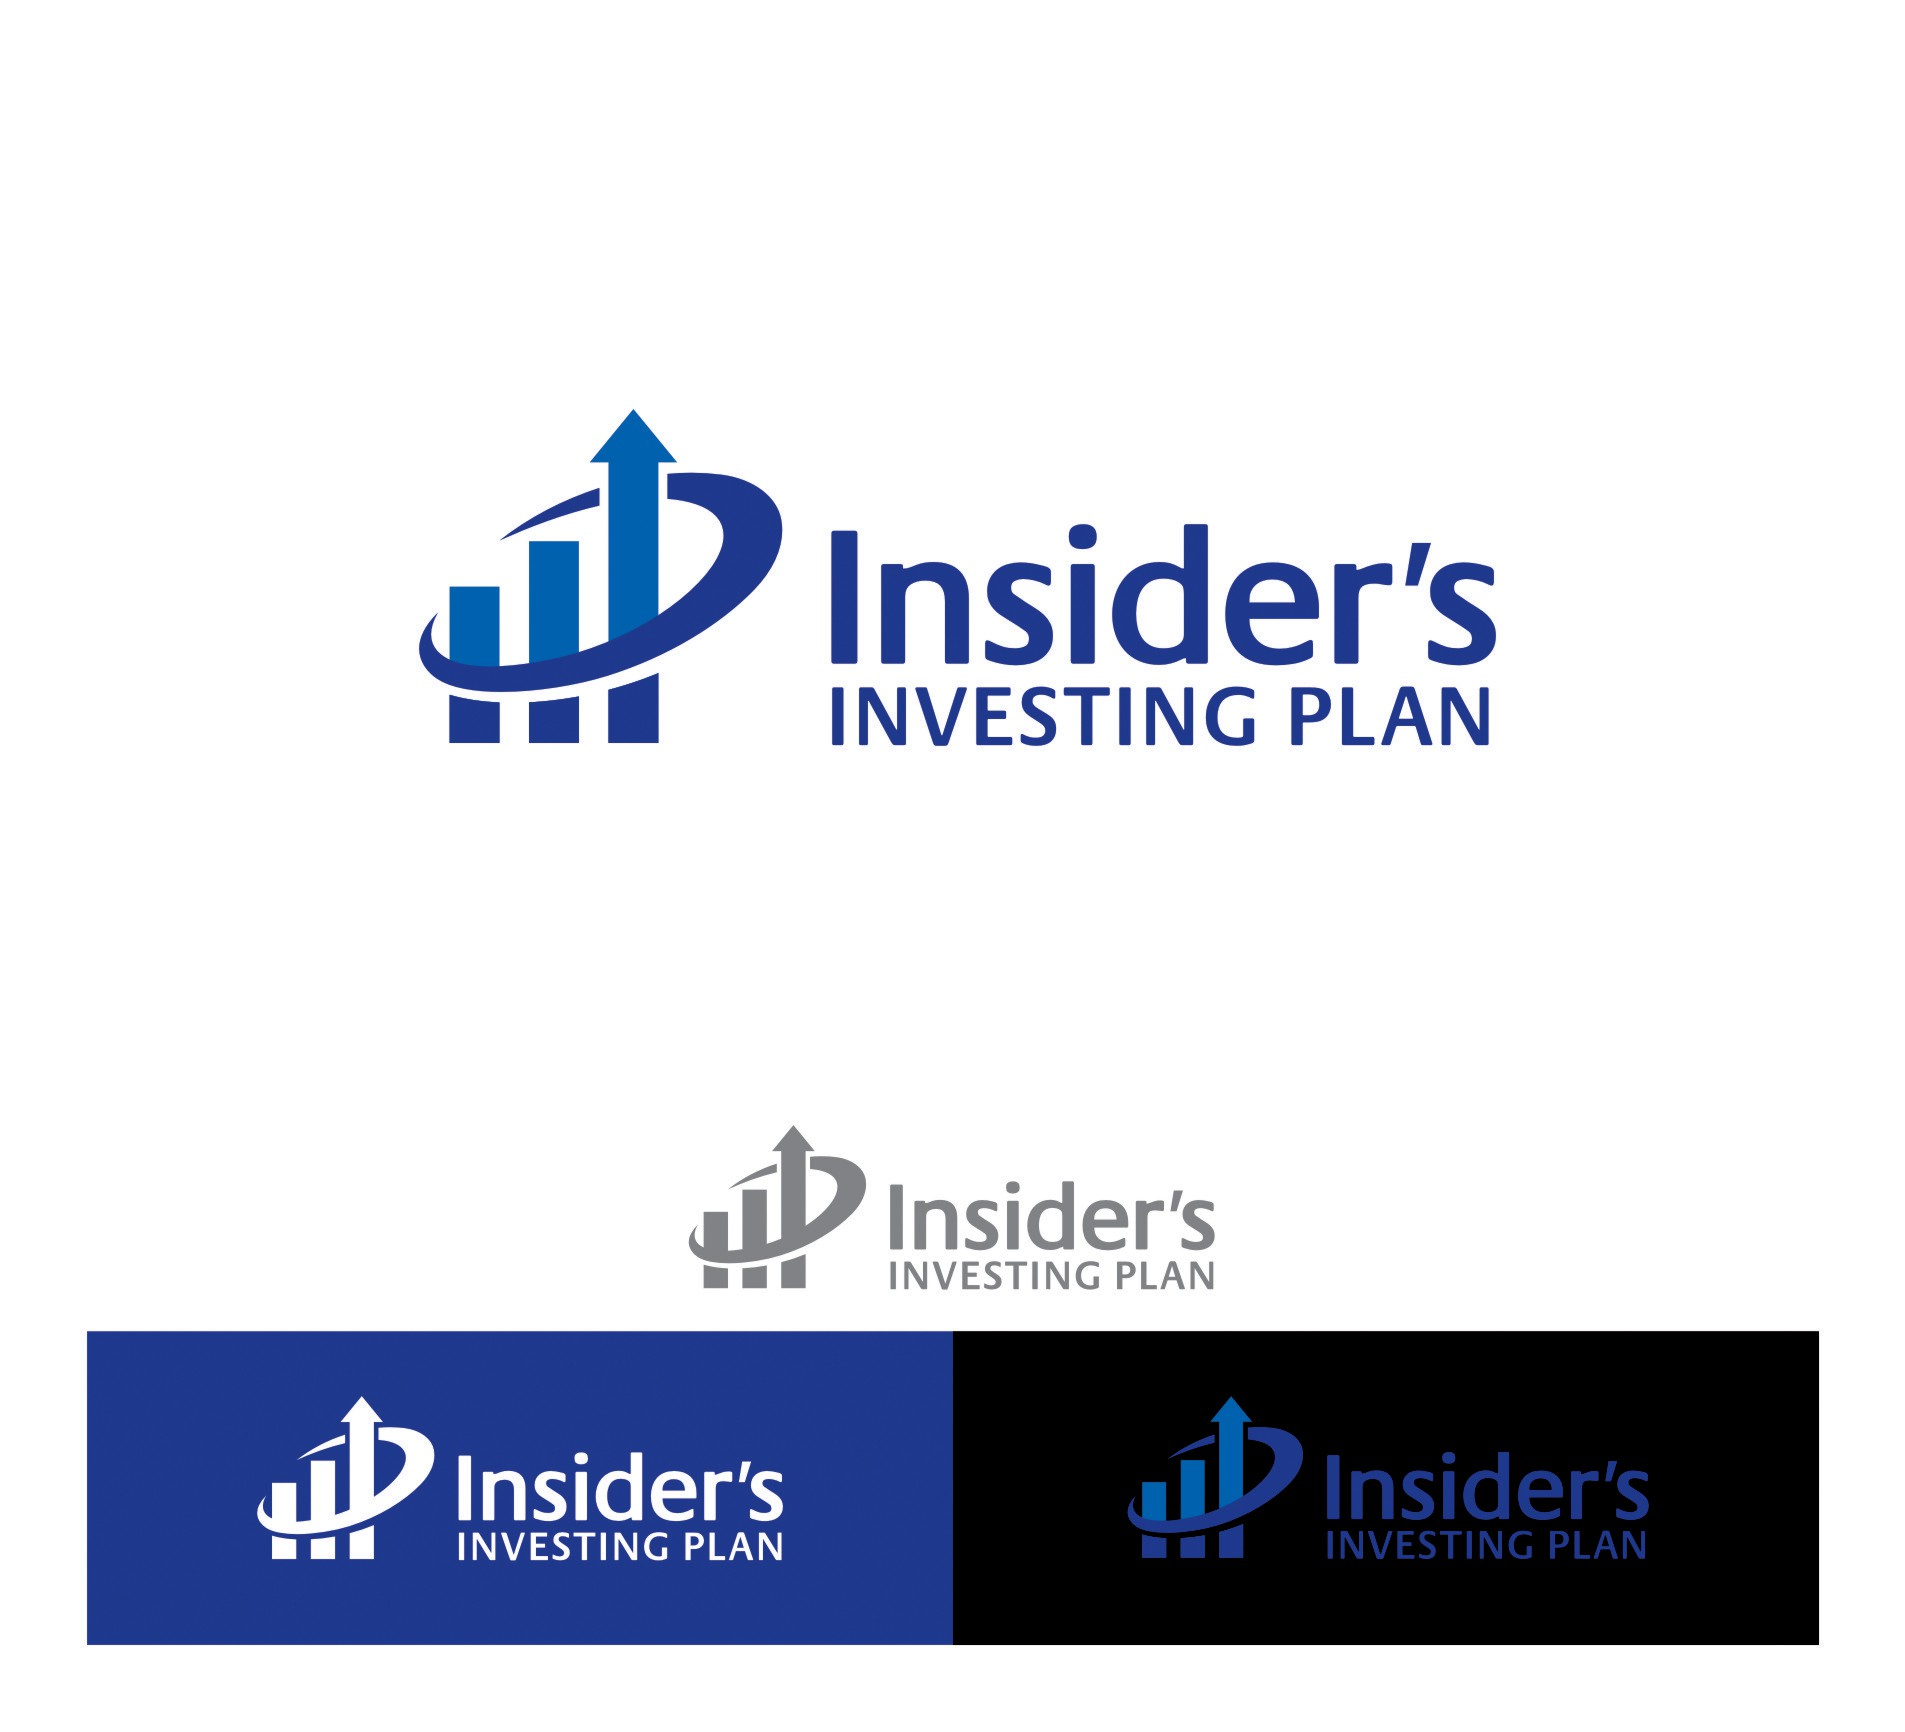 New logo wanted for Insider's Investing Plan